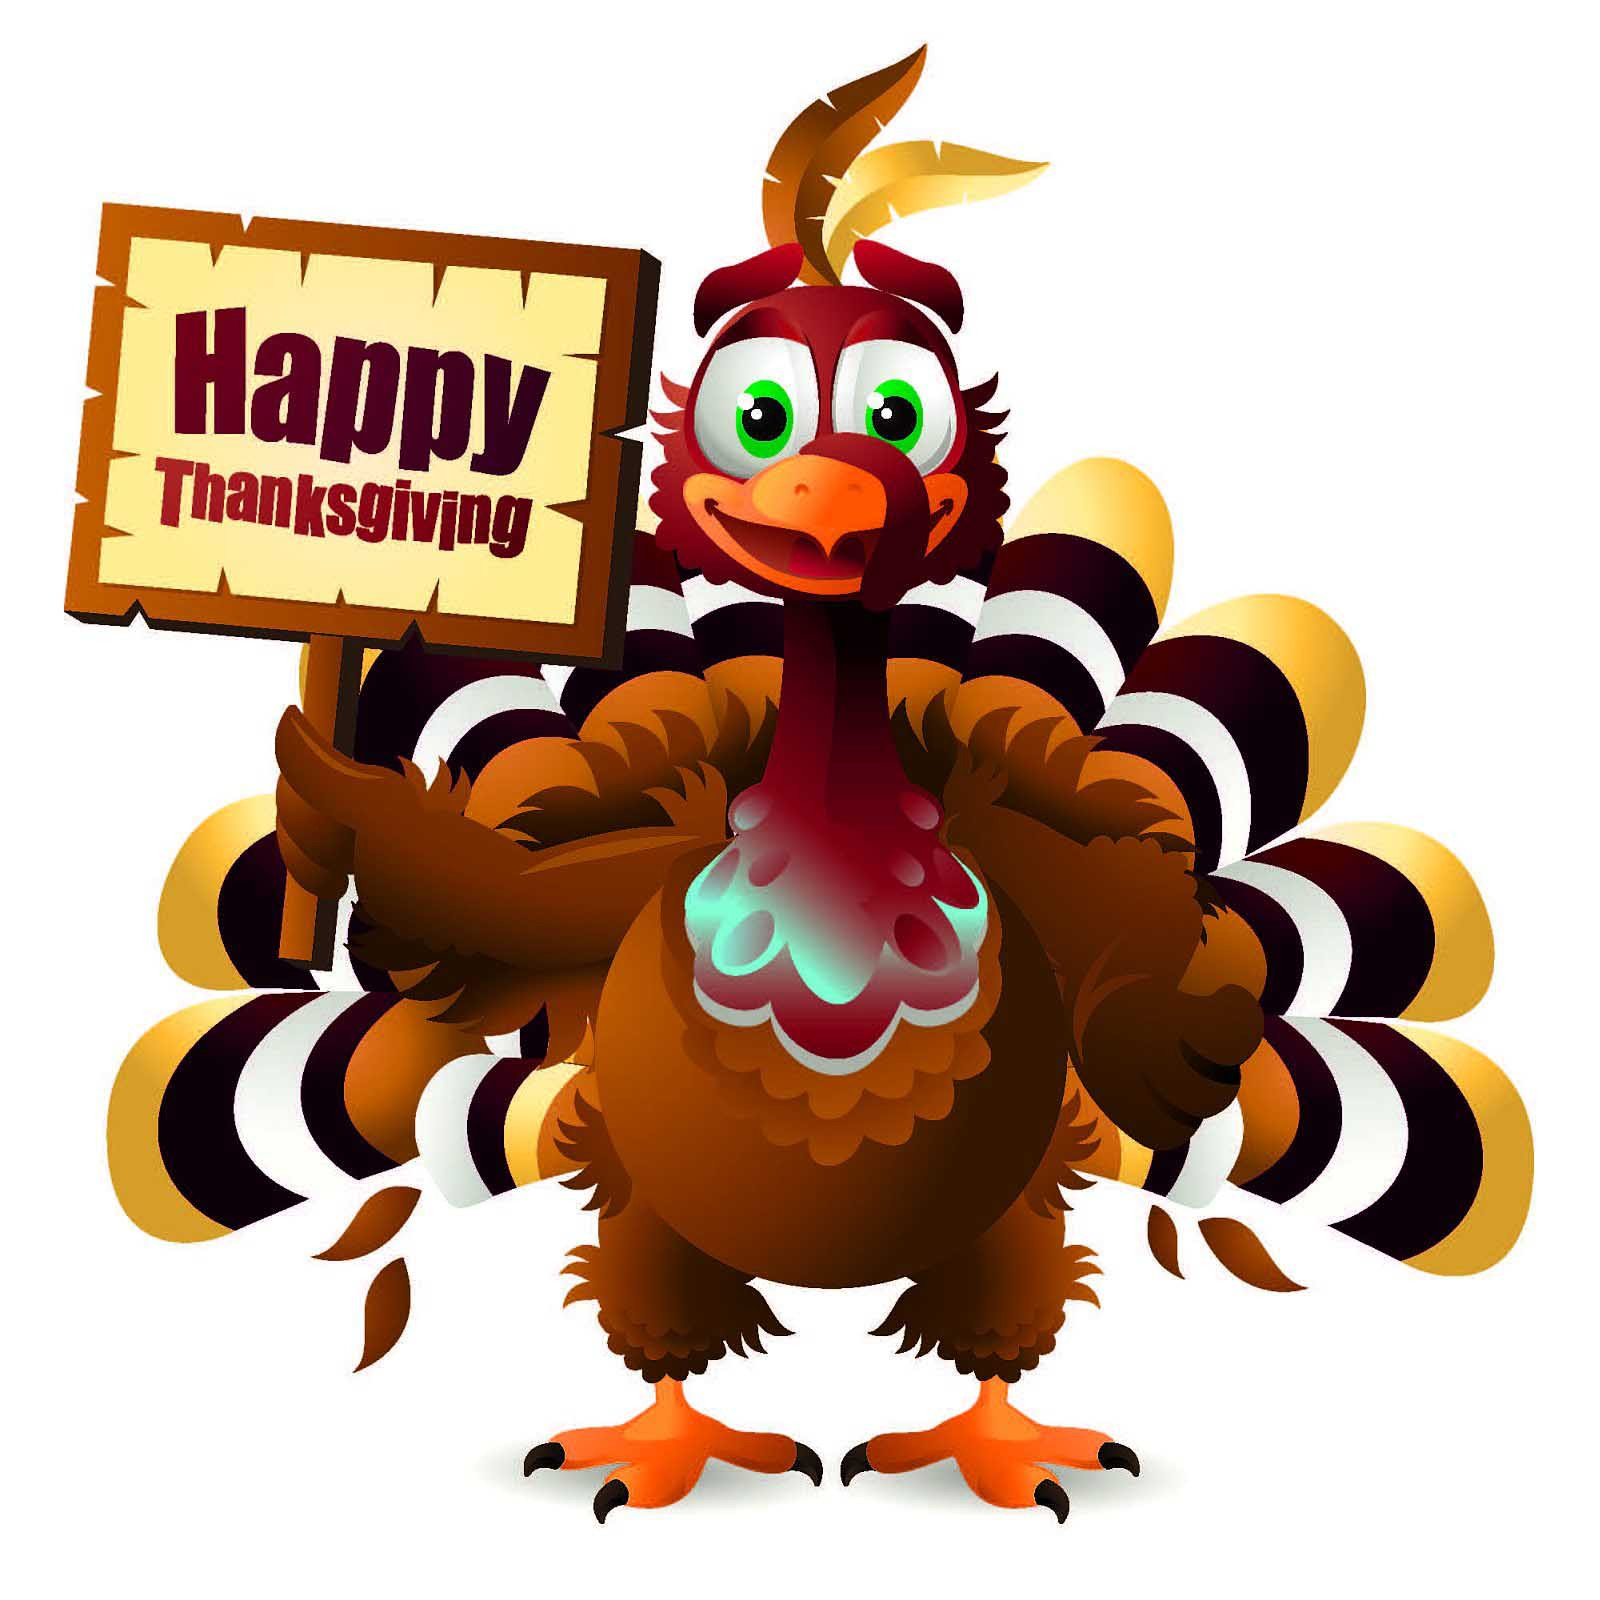 Pics Of Thanksgiving Turkey  2016 Thanksgiving Charlie Brown Wallpapers & Clipart s